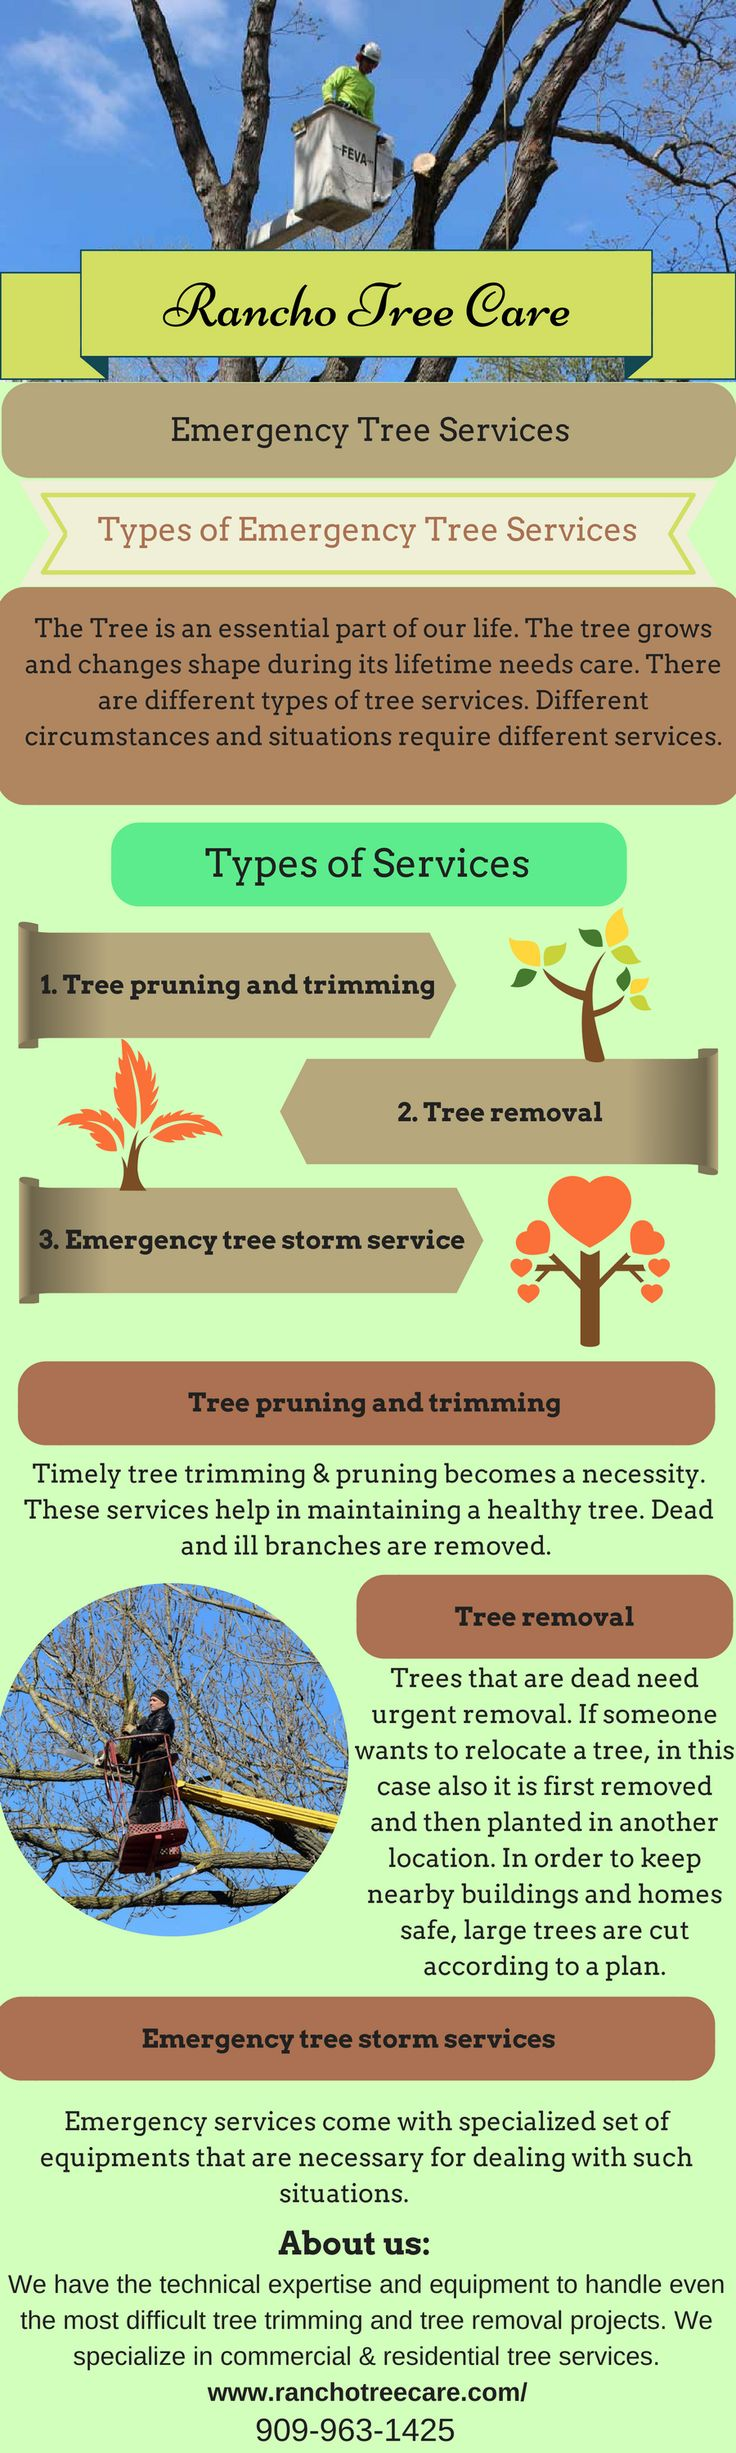 Need an emergency tree care service? Then, Rancho Tree care provides all types of emergency tree services like tree removal, tree trimming, pruning & many more. They have an expert who gives you complete solution and they provide services in Rancho Cucamonga, Claremont, Upland, Corona, Montclair within your budget. For more details you can visit at - http://ranchotreecare.com/